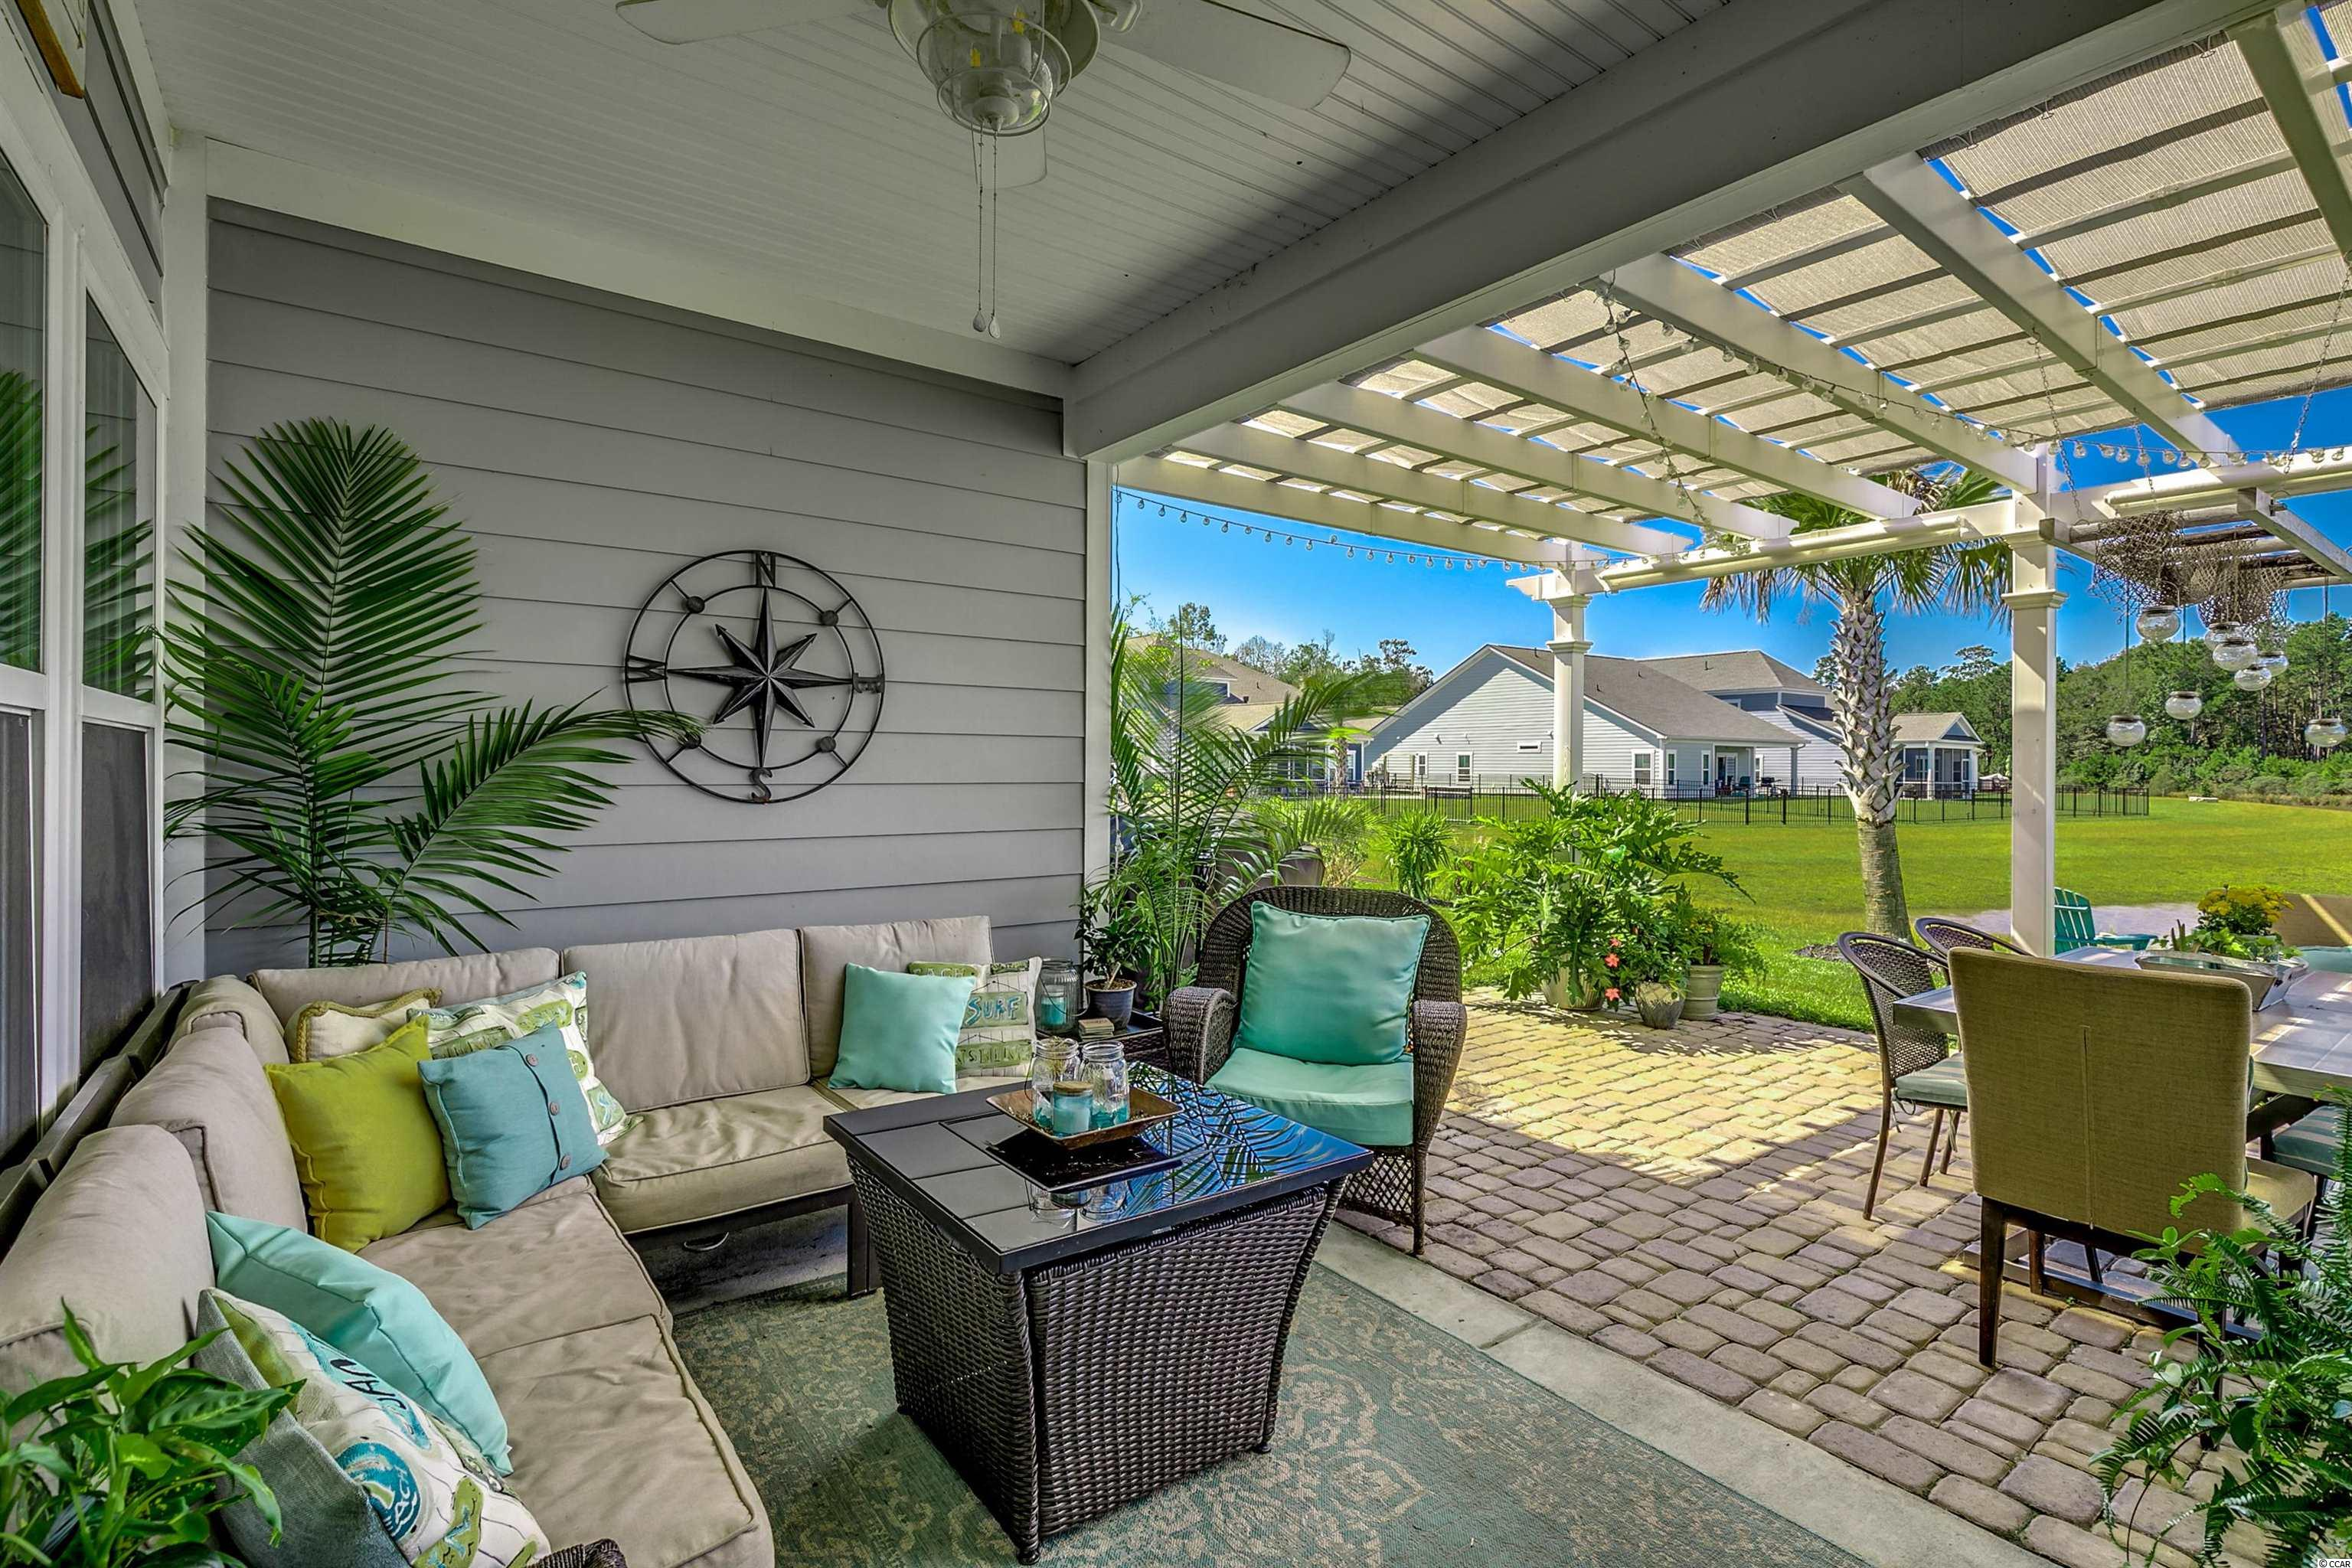 986 Mourning Dove Dr. Myrtle Beach, SC 29577